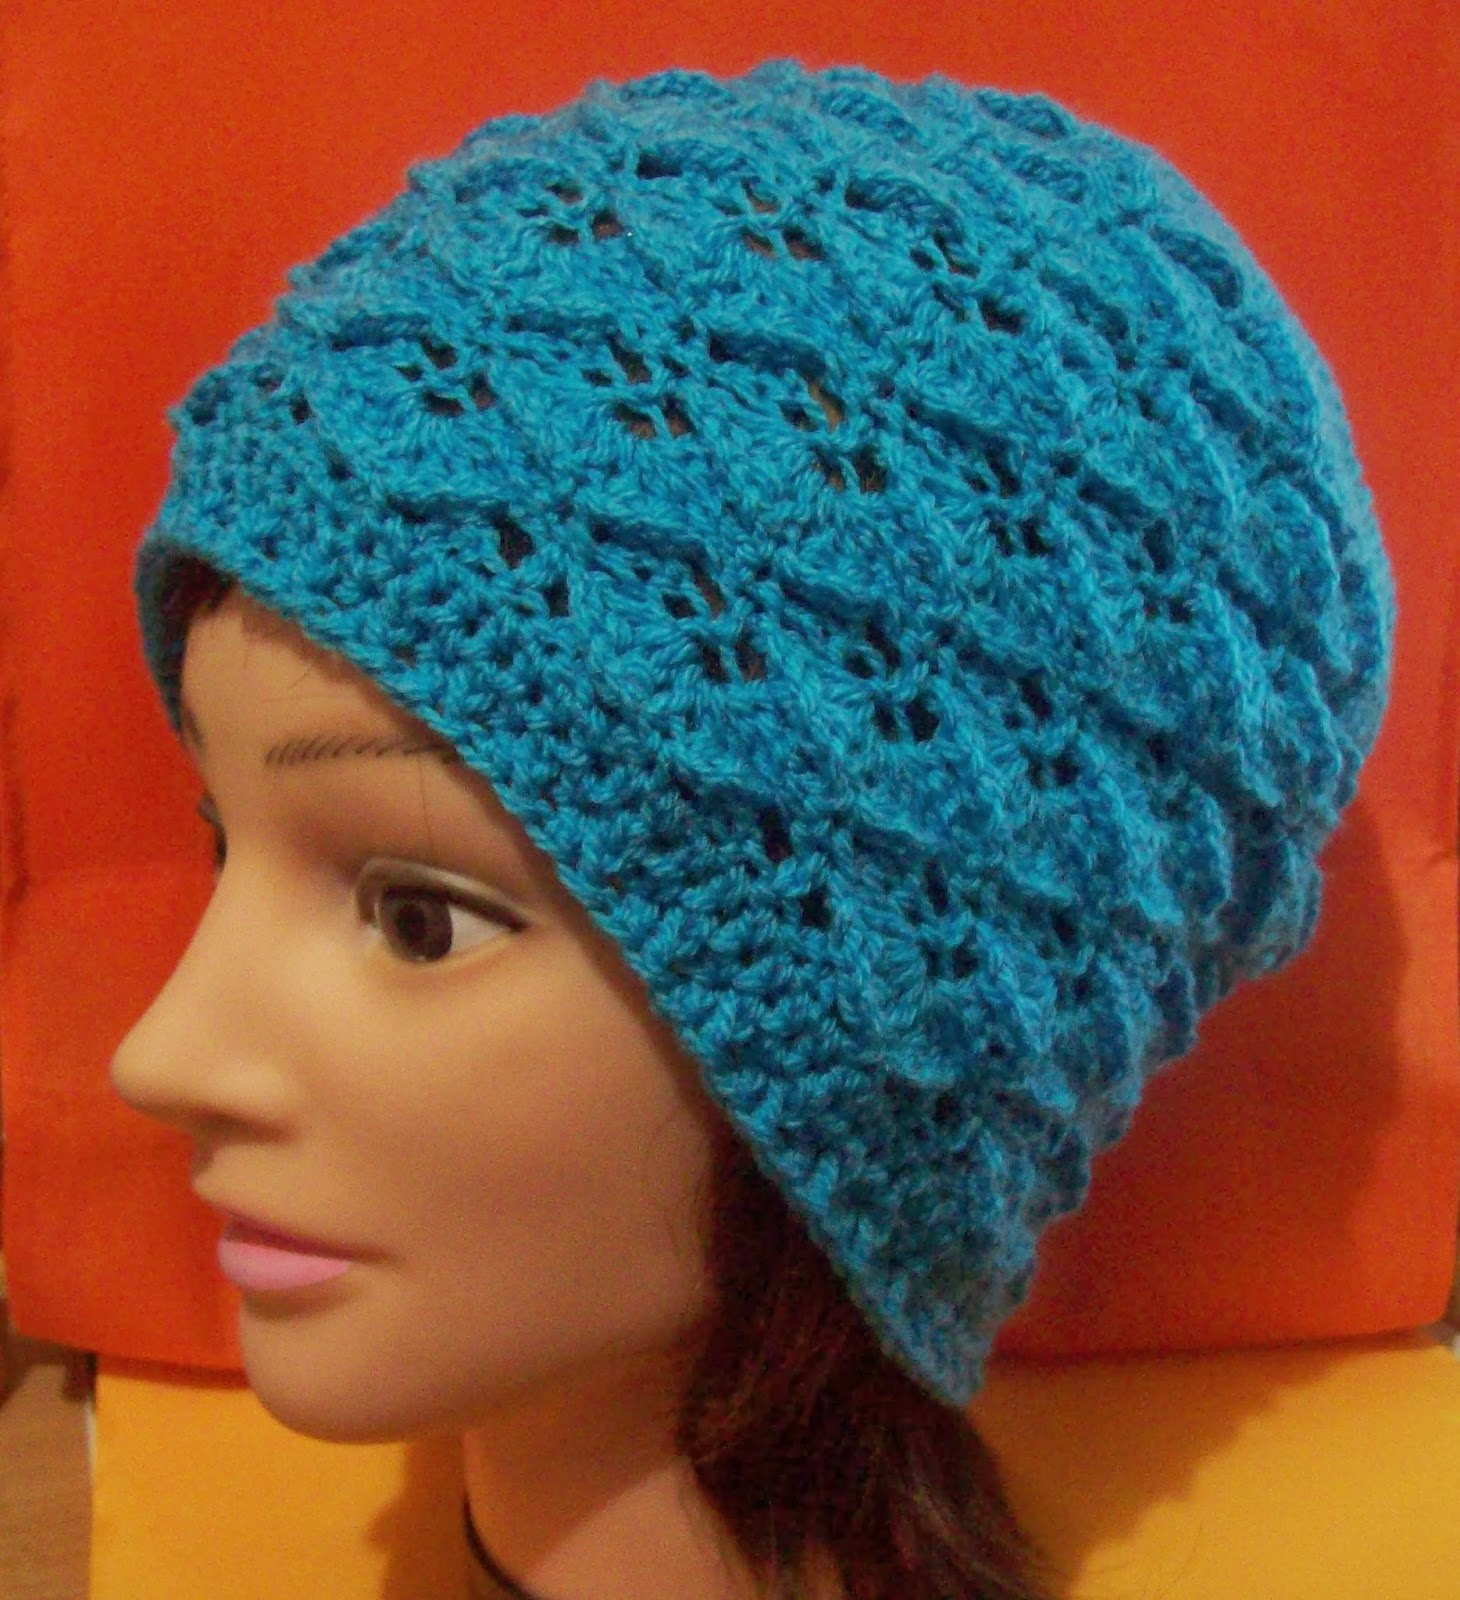 Crochet Patterns Hats For Adults : Cats-Rockin-Crochet, Free Crochet and Knit Patterns